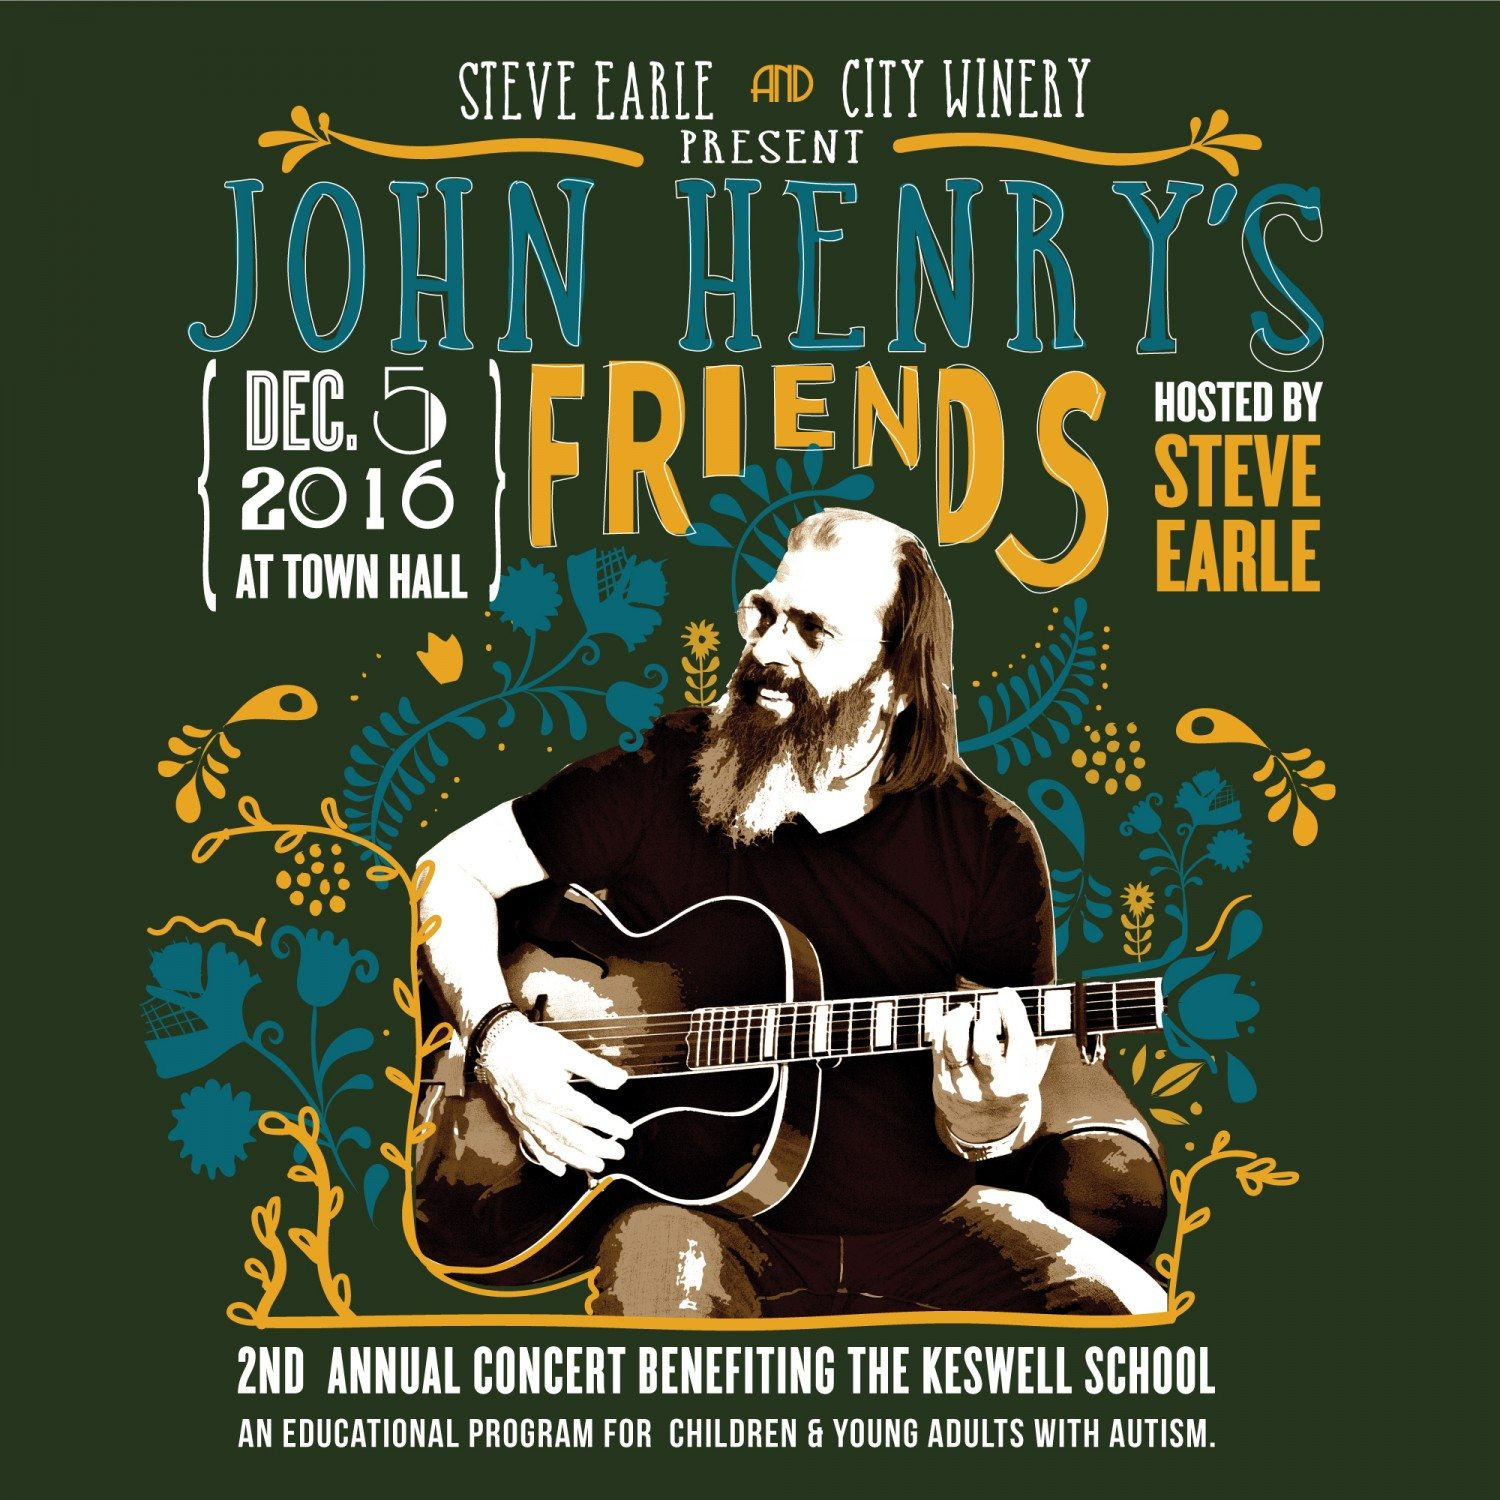 Steve Earle & The Dukes to headline benefit for The Keswell School on Dec. 5 at Town Hall